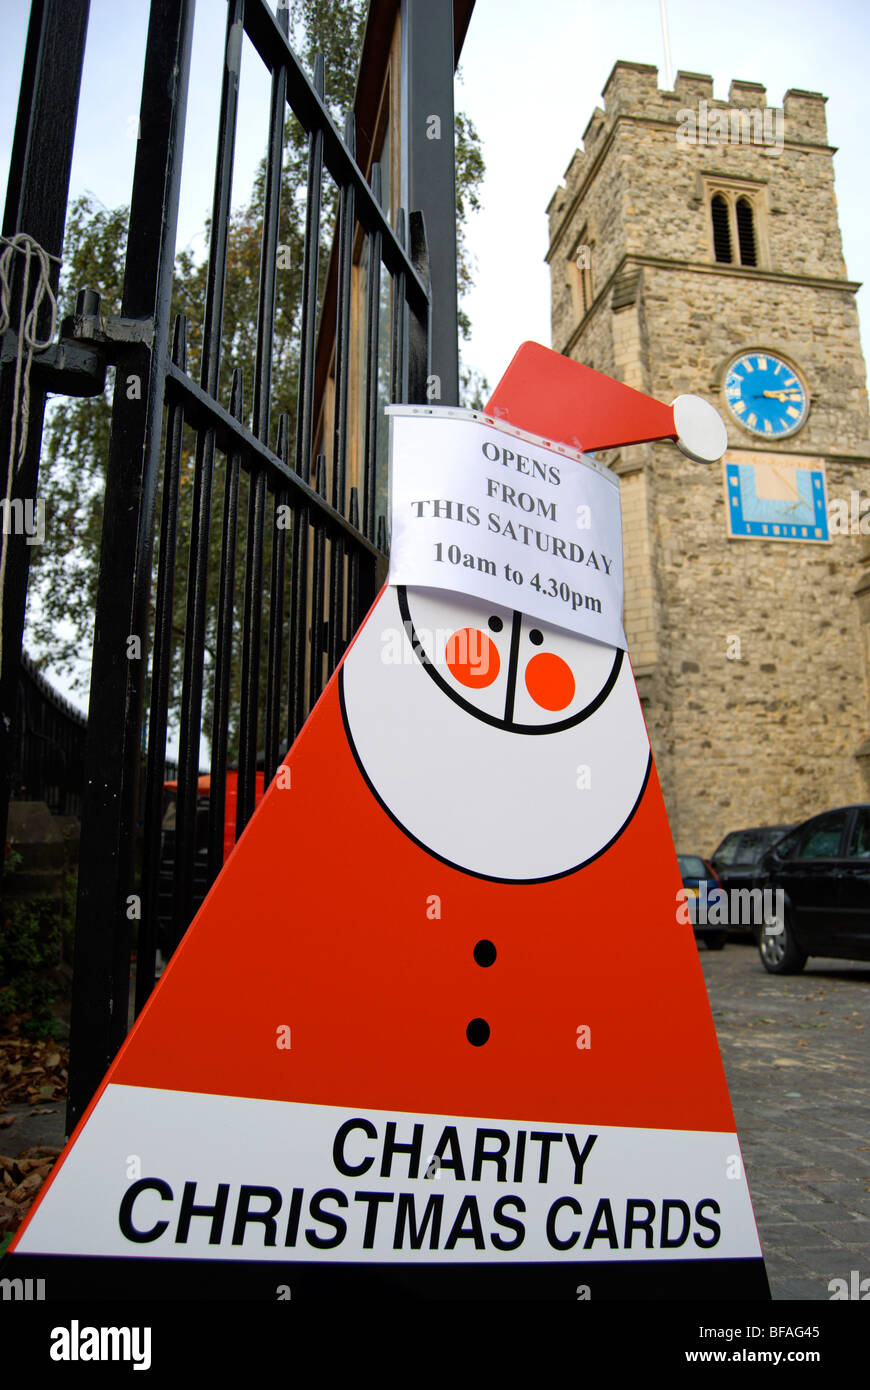 charity christmas cards sign in shape of father christmas, at st ...